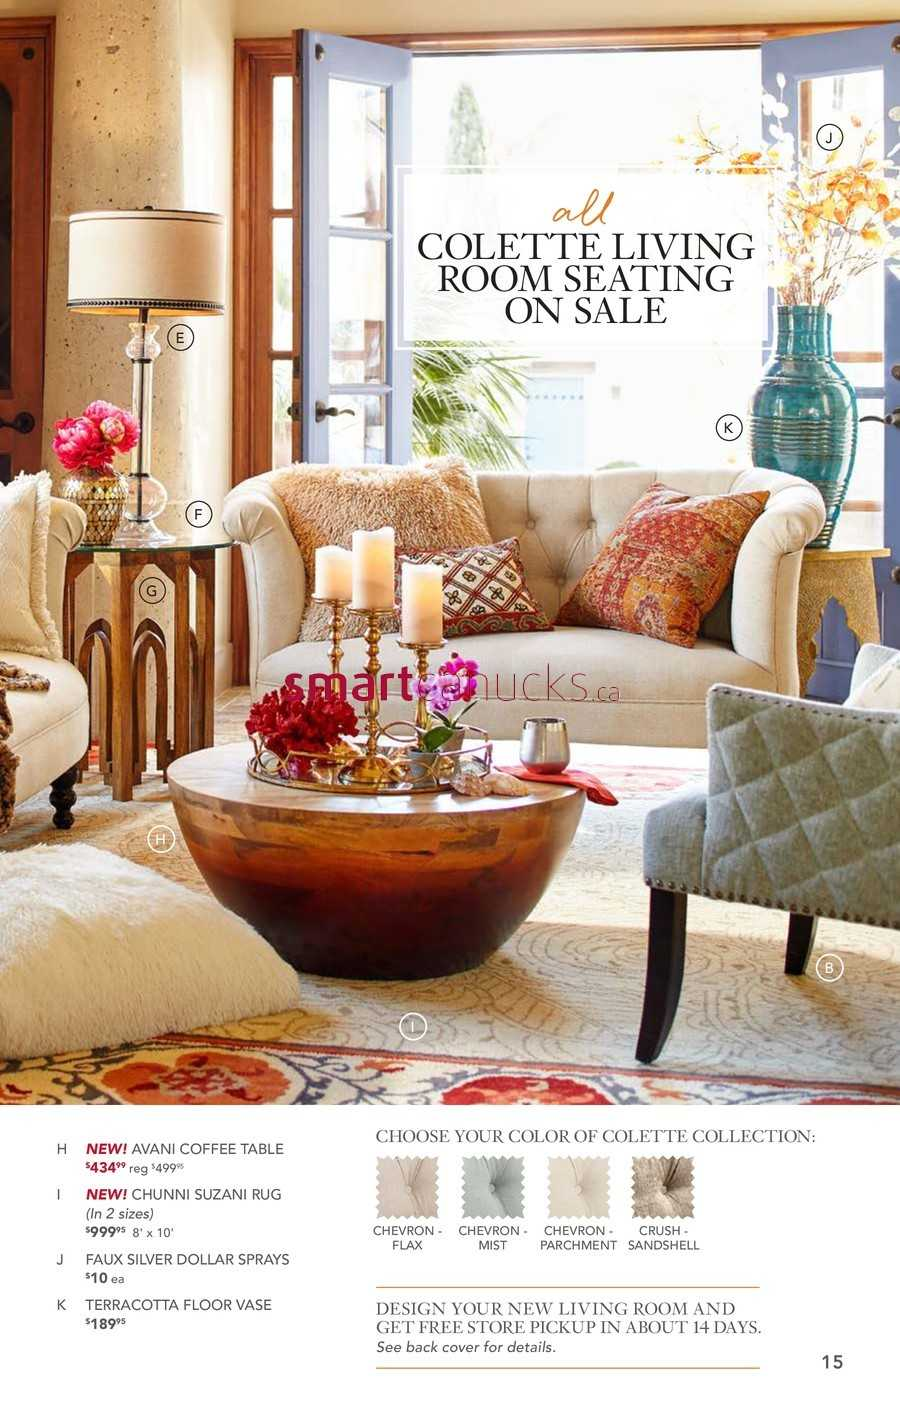 25 30 1 Microsoft Way Redmond Wa: Pier 1 Imports Flyer April 25 To May 30